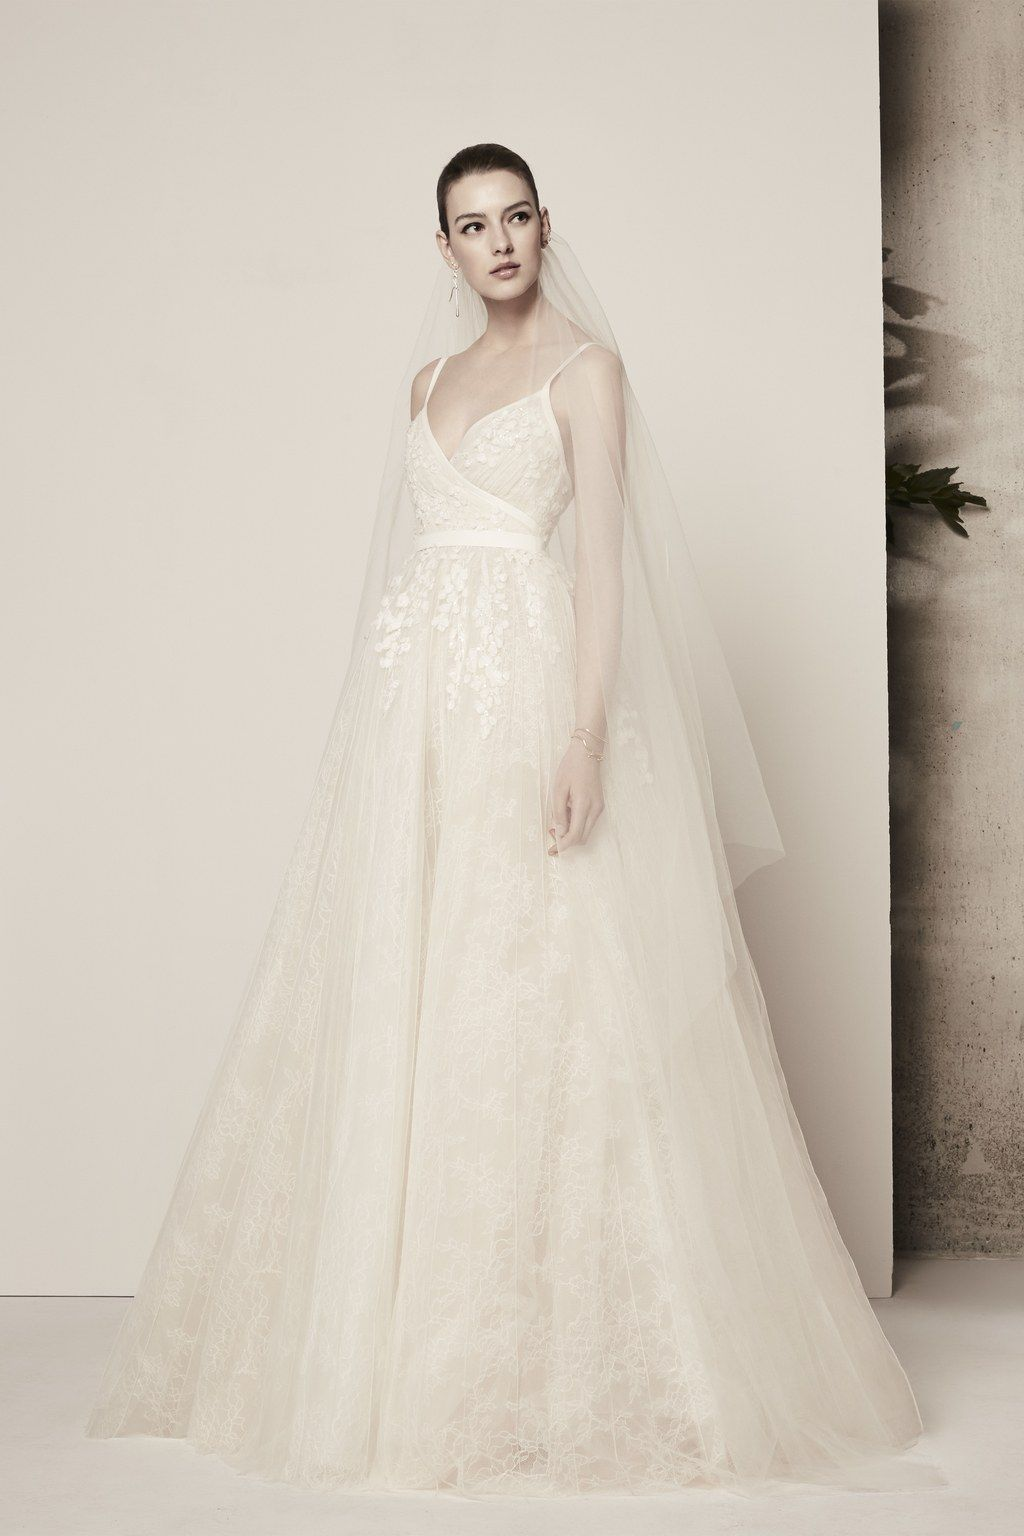 These brandnew wedding dresses are going to be all over